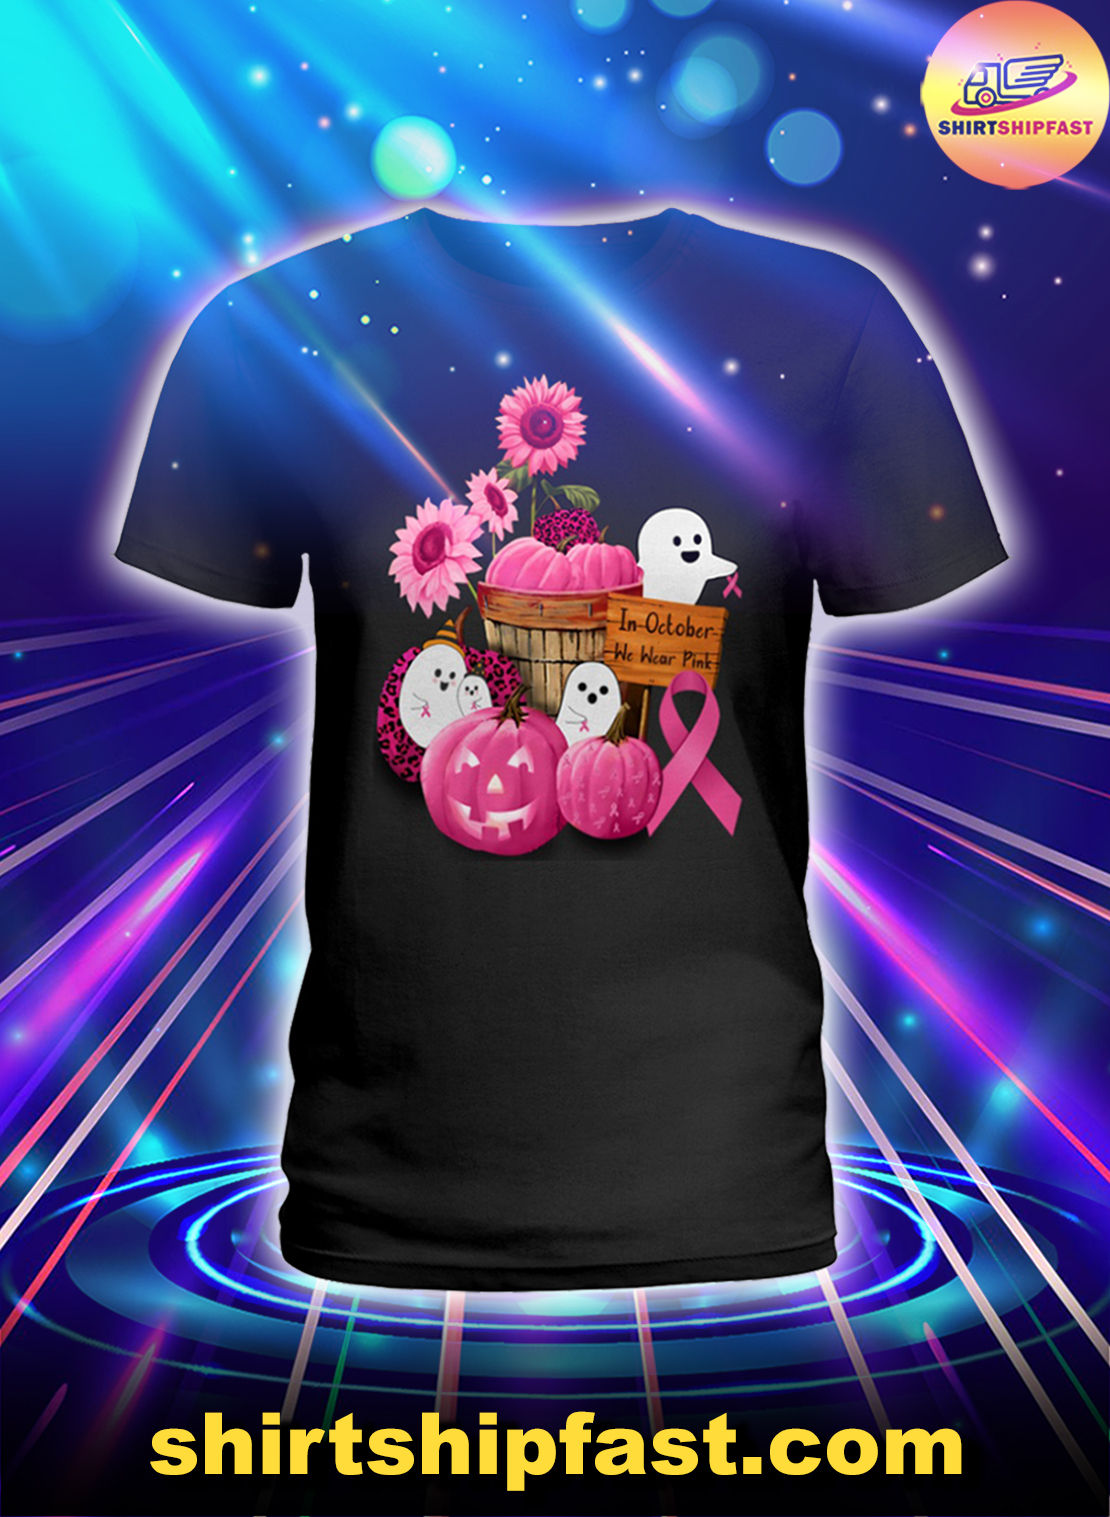 Breast cancer awareness In October we wear pink ghosts and pumpkins lady shirt